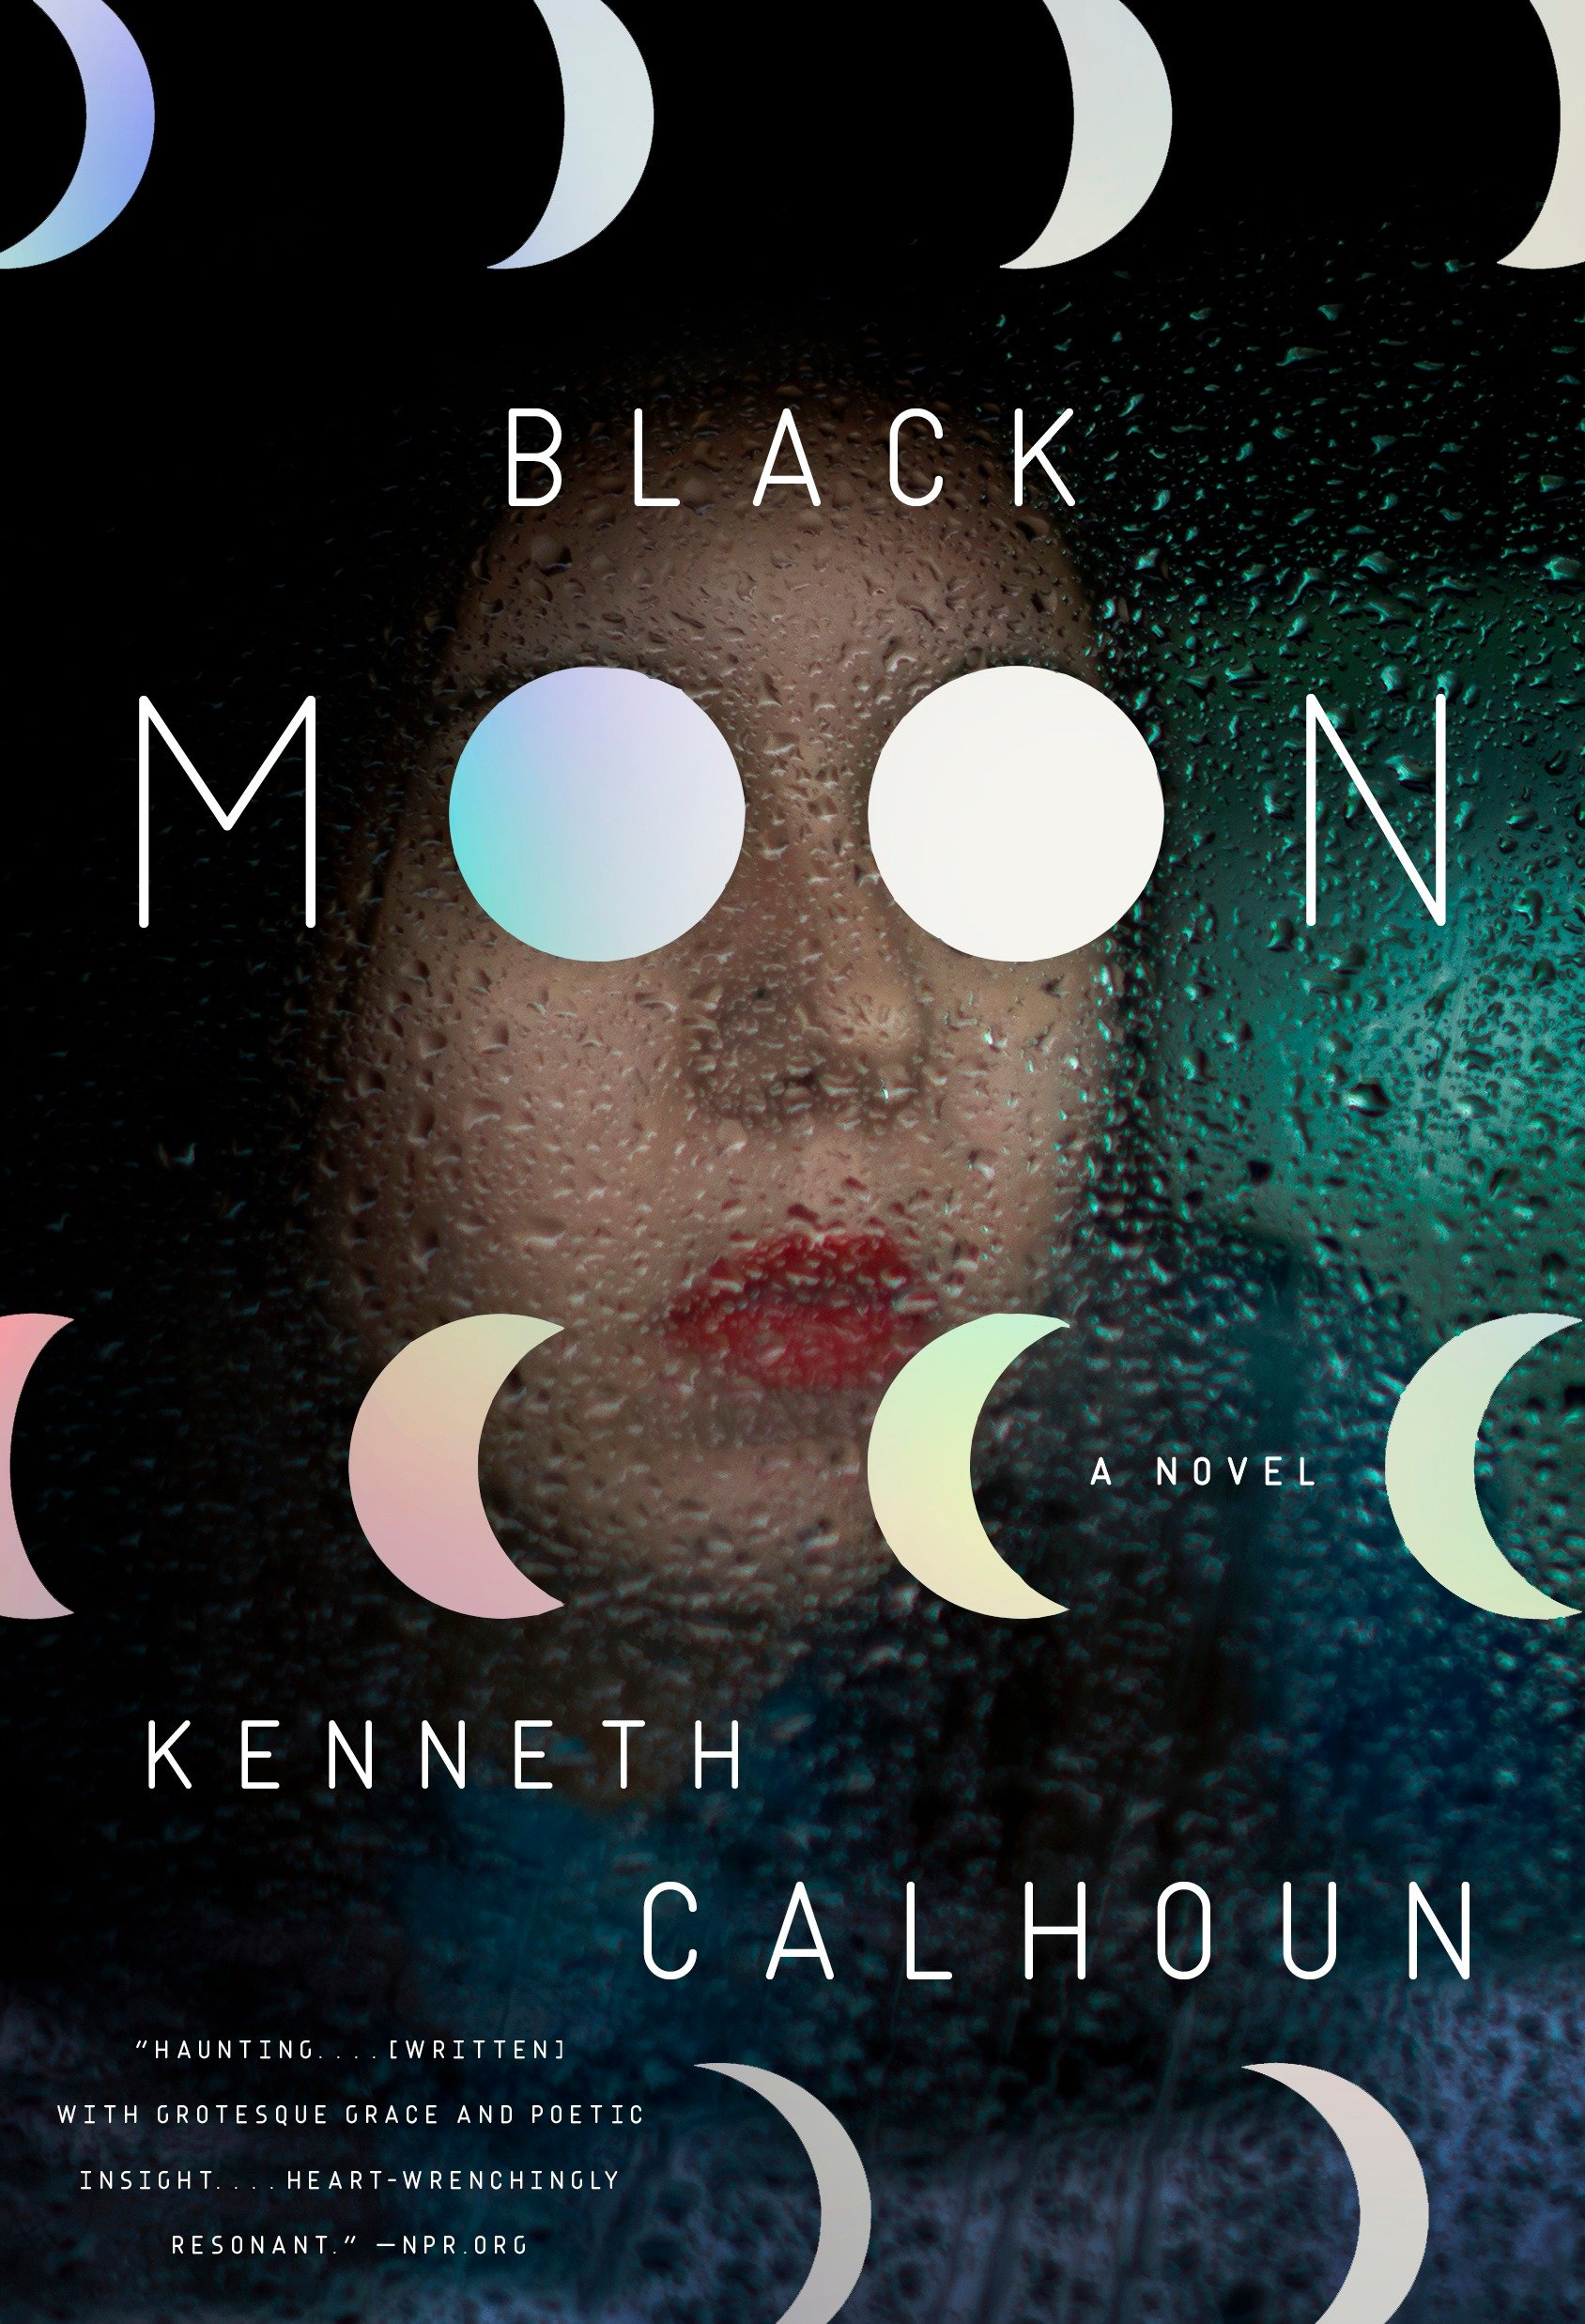 Black Moon A Novel